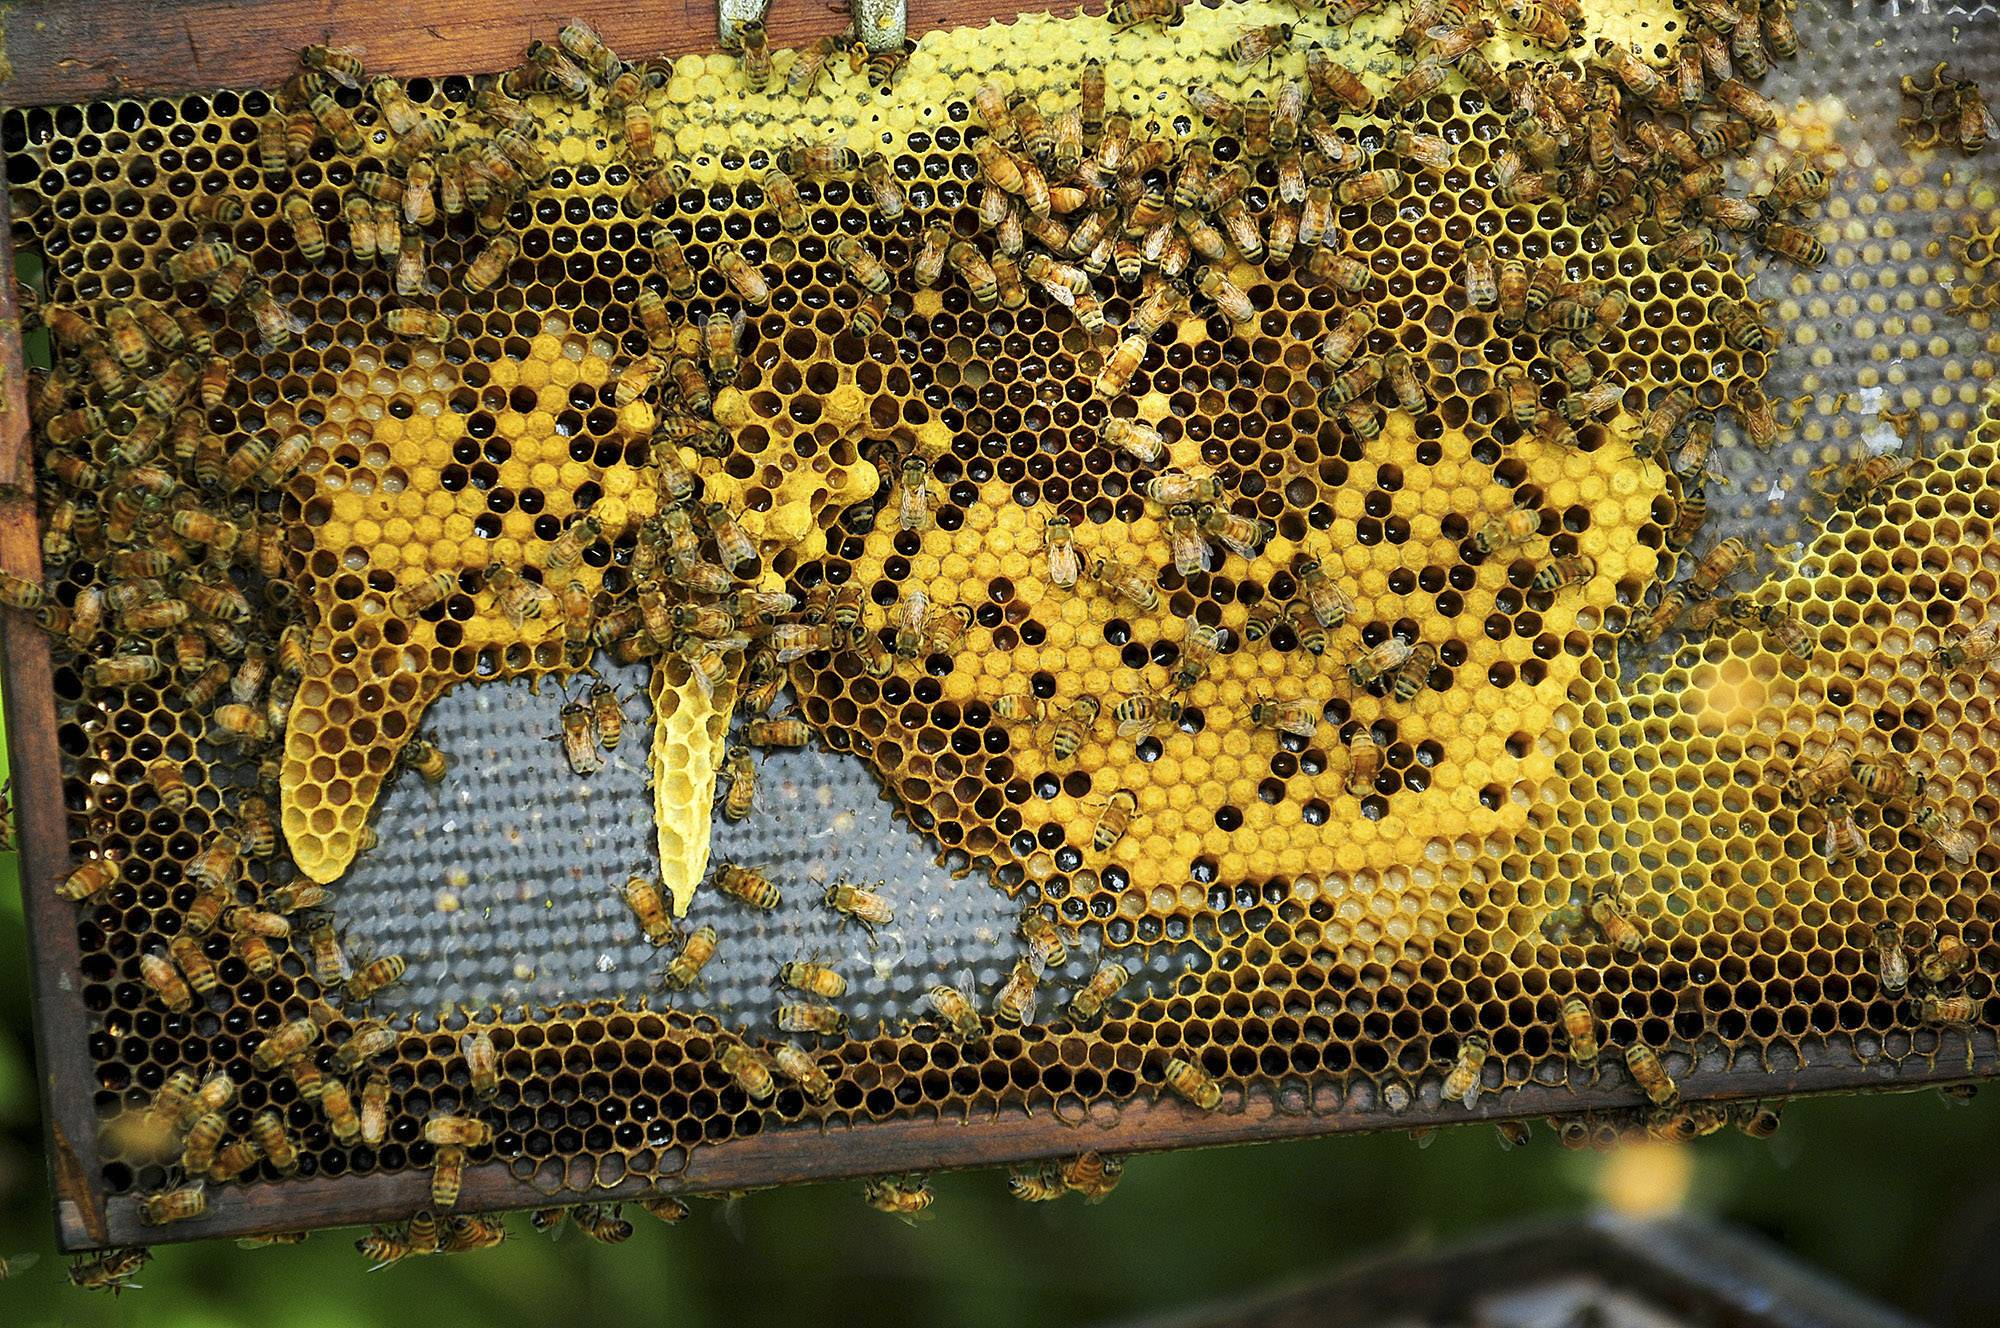 Honeybees populate a comb at Honey Hill Orchard in Waterman.